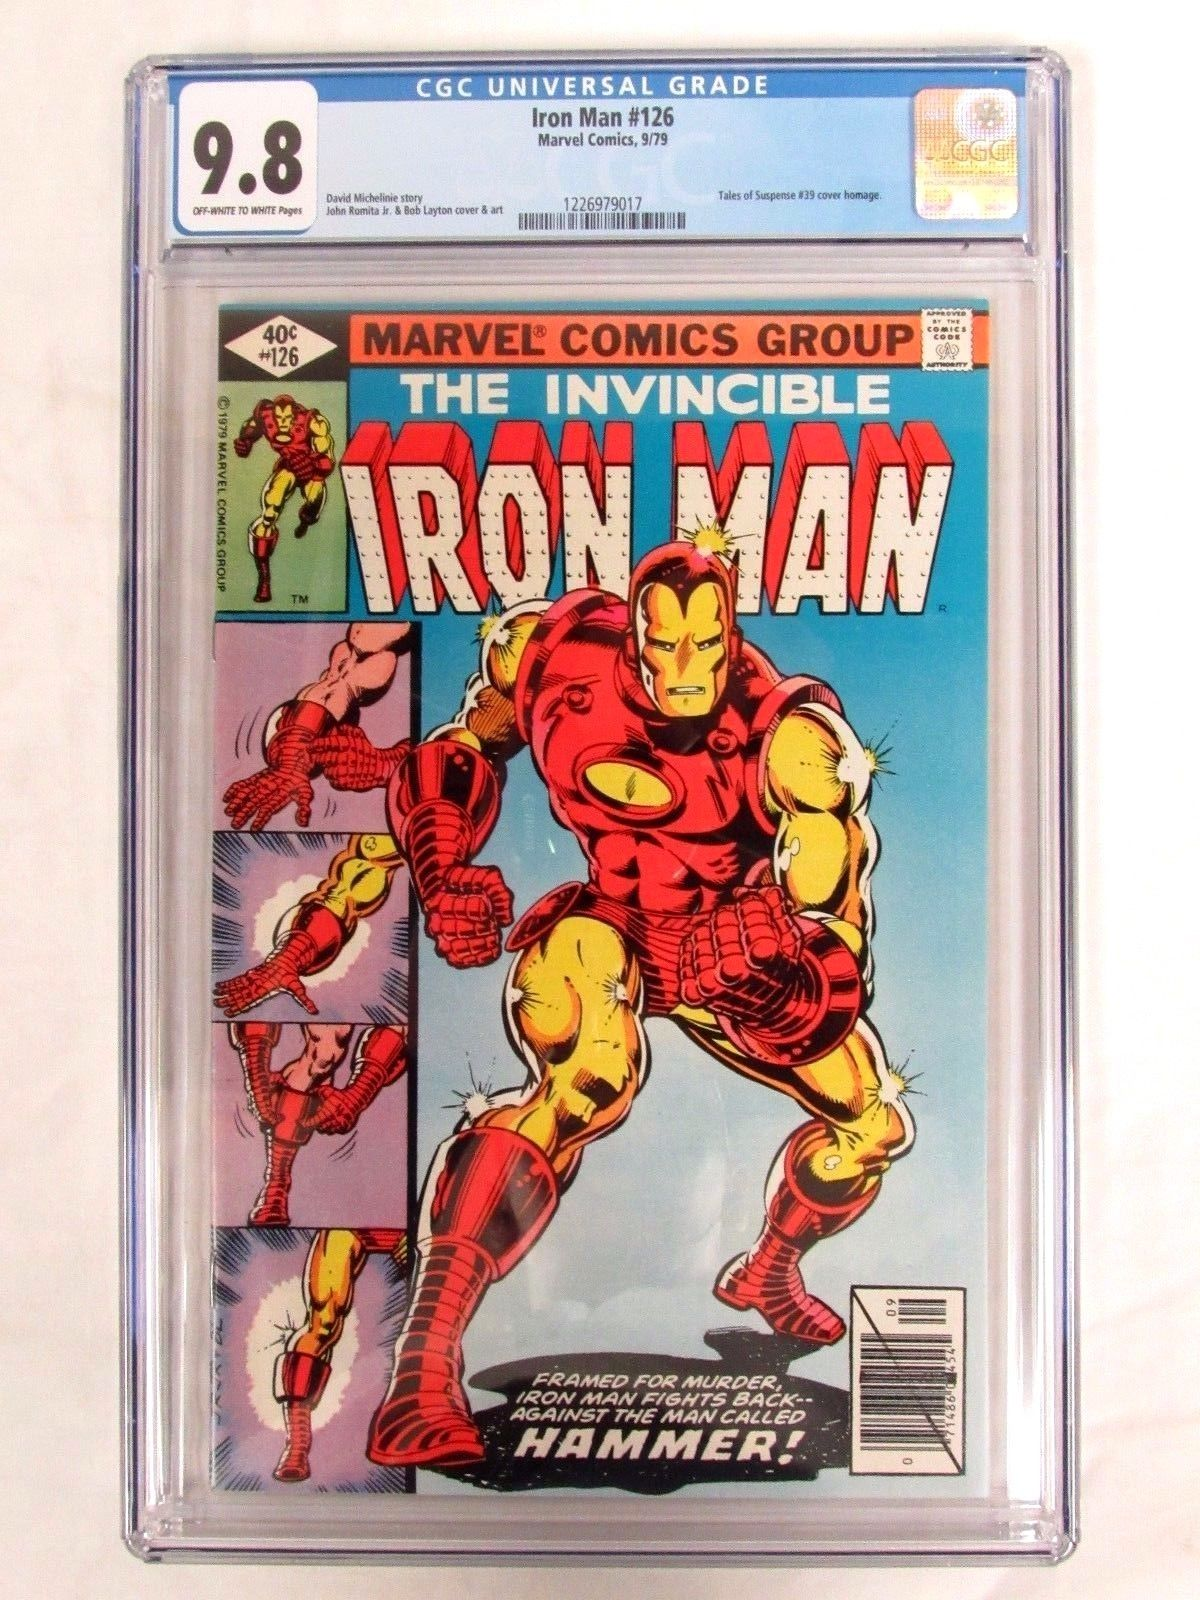 Marvel Comics Iron Man #126 (1979) Key ToS #39 Cover Swipe CGC 9.8 FL331